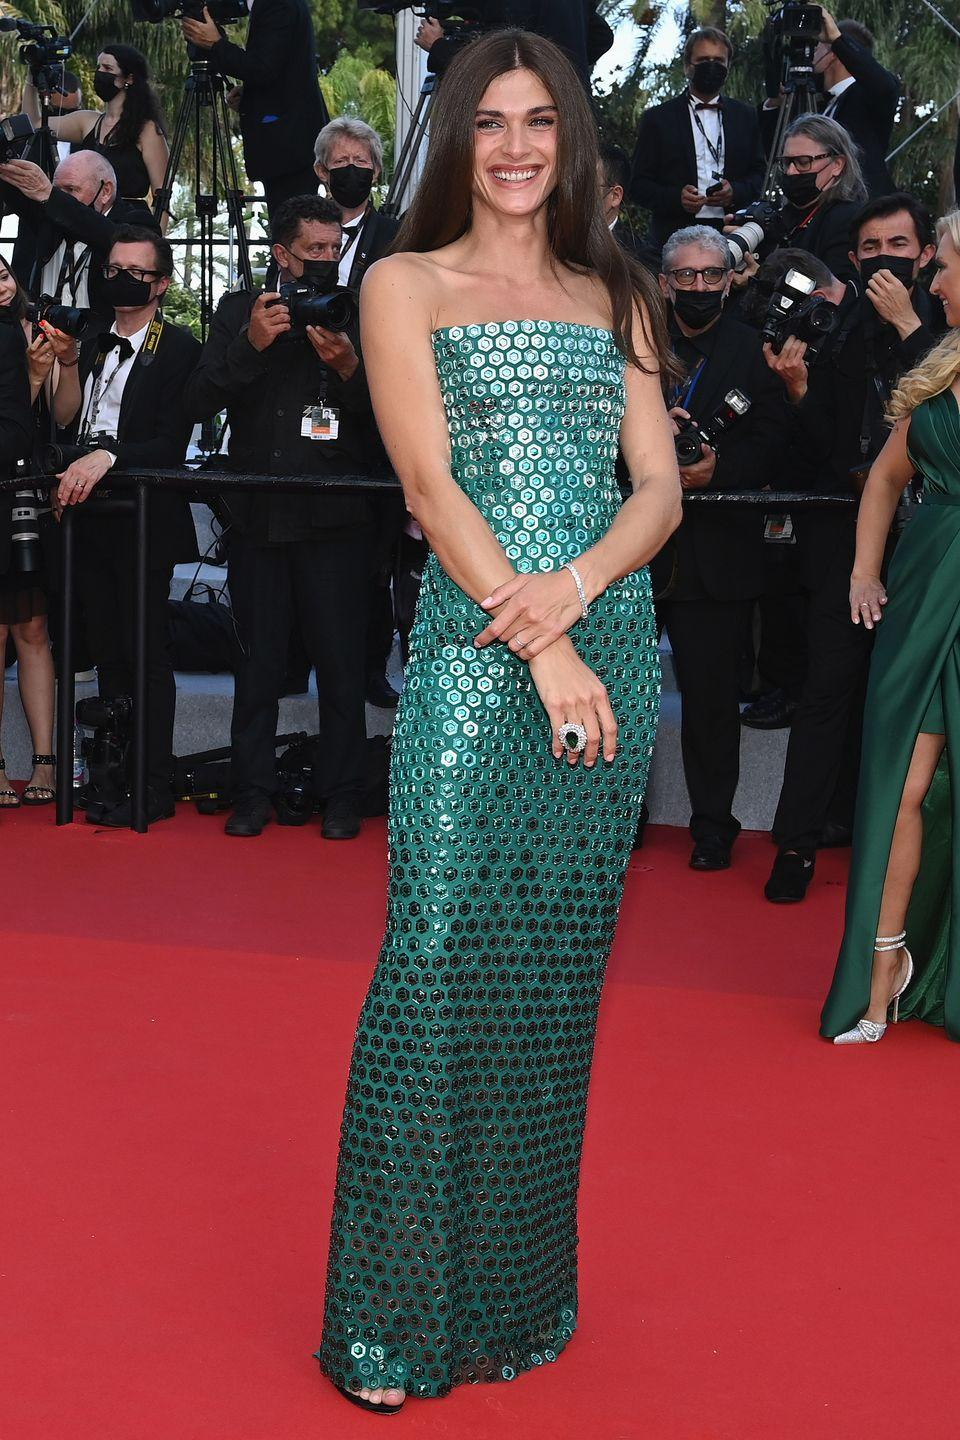 <p>The model was a veritable red carpet mermaid in her shimmering paillette-covered gown. </p>